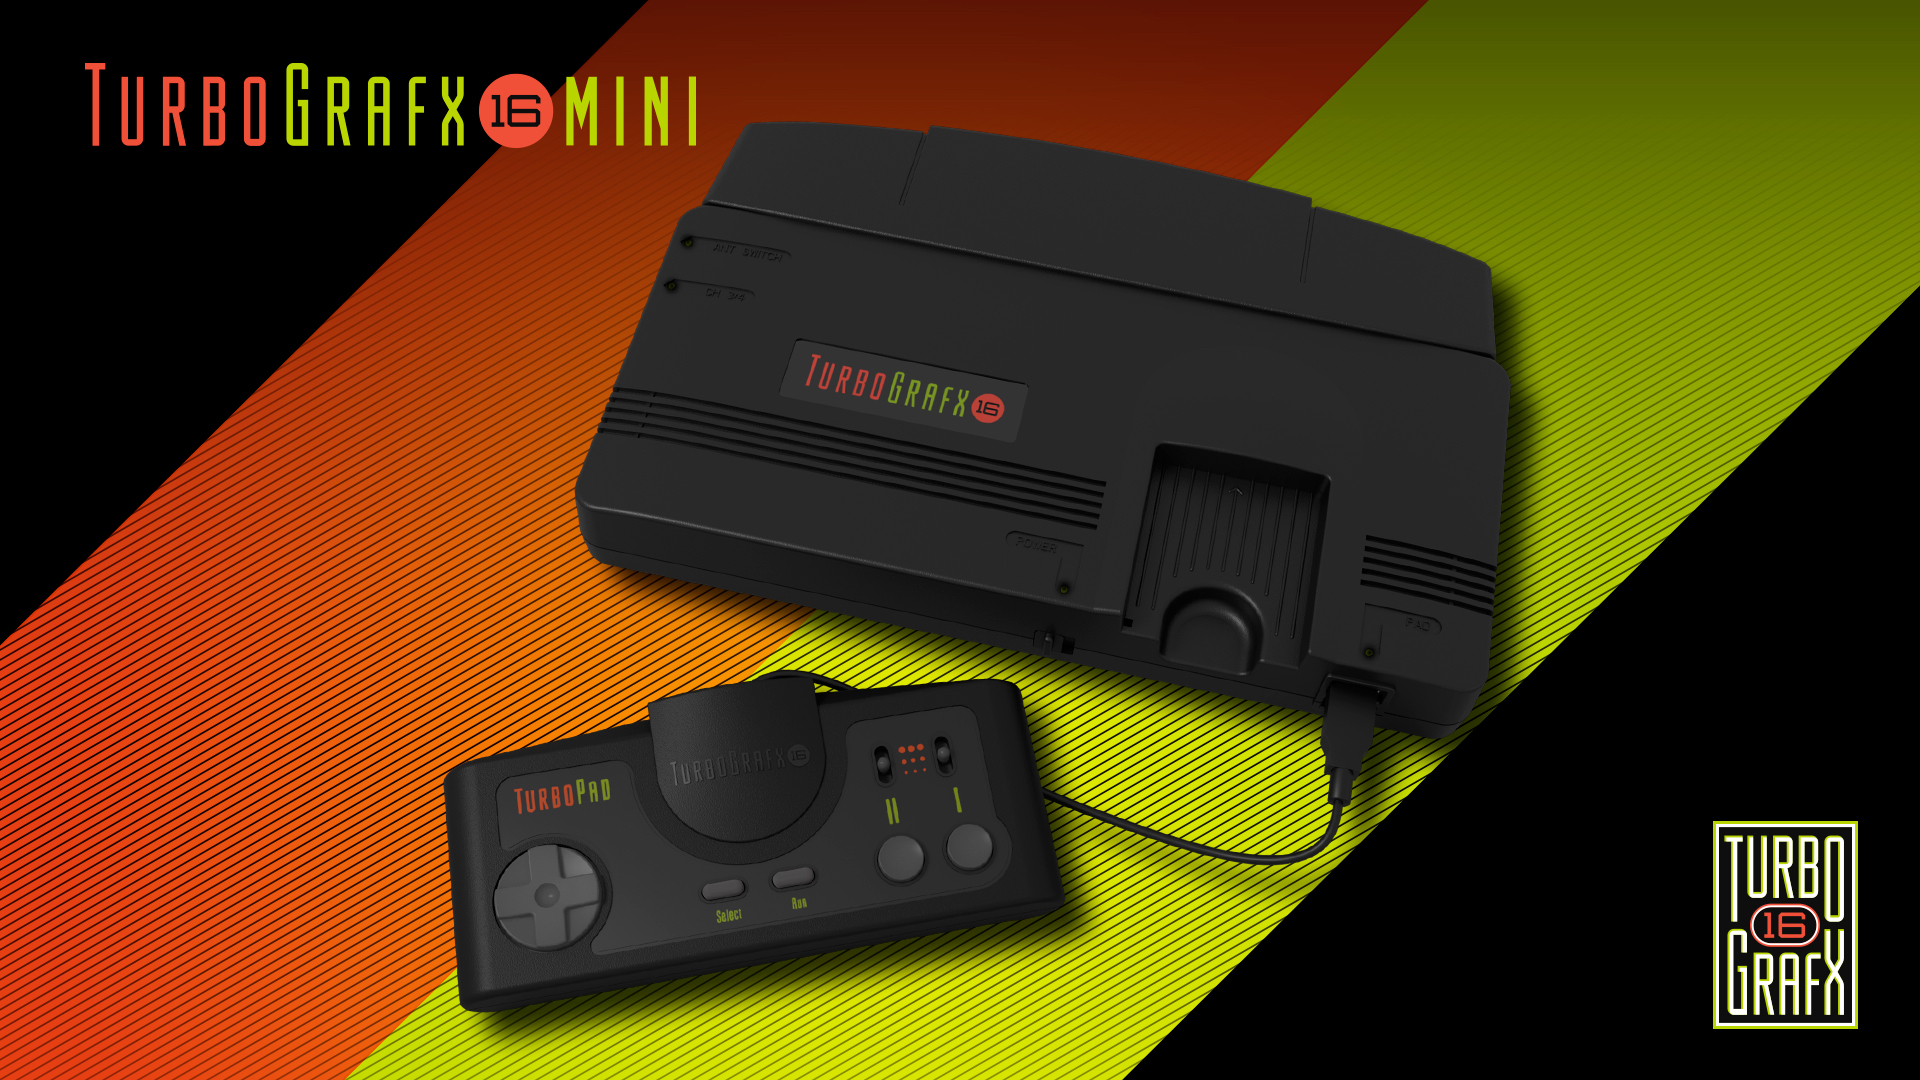 Konami announces the TurboGrafx-16 Mini retro console at E3 2019